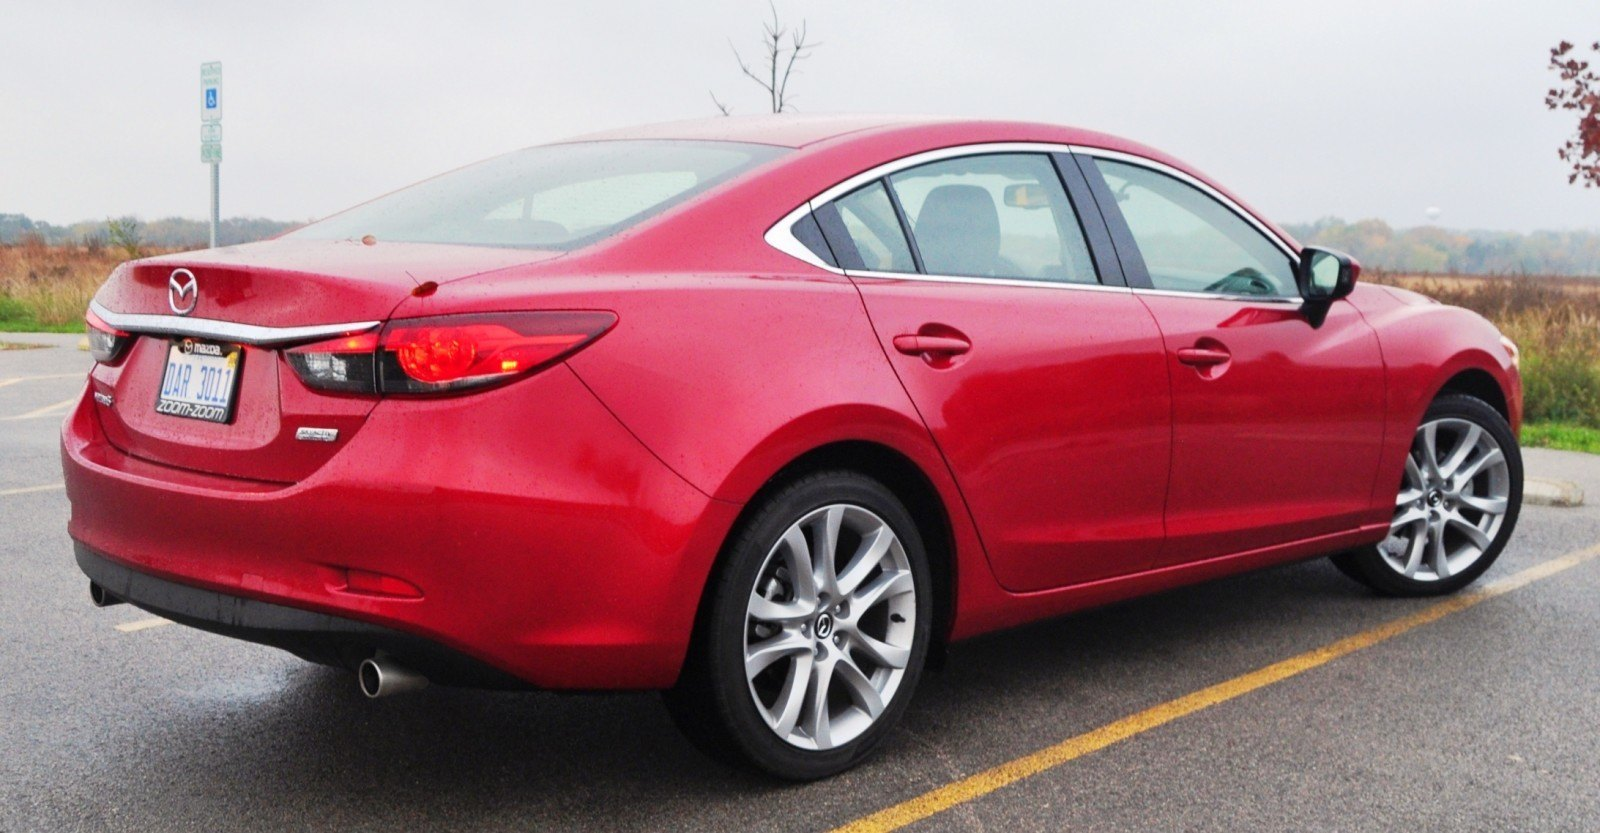 2014 Mazda6 i Touring - Video Summary + 40 High-Res Images17